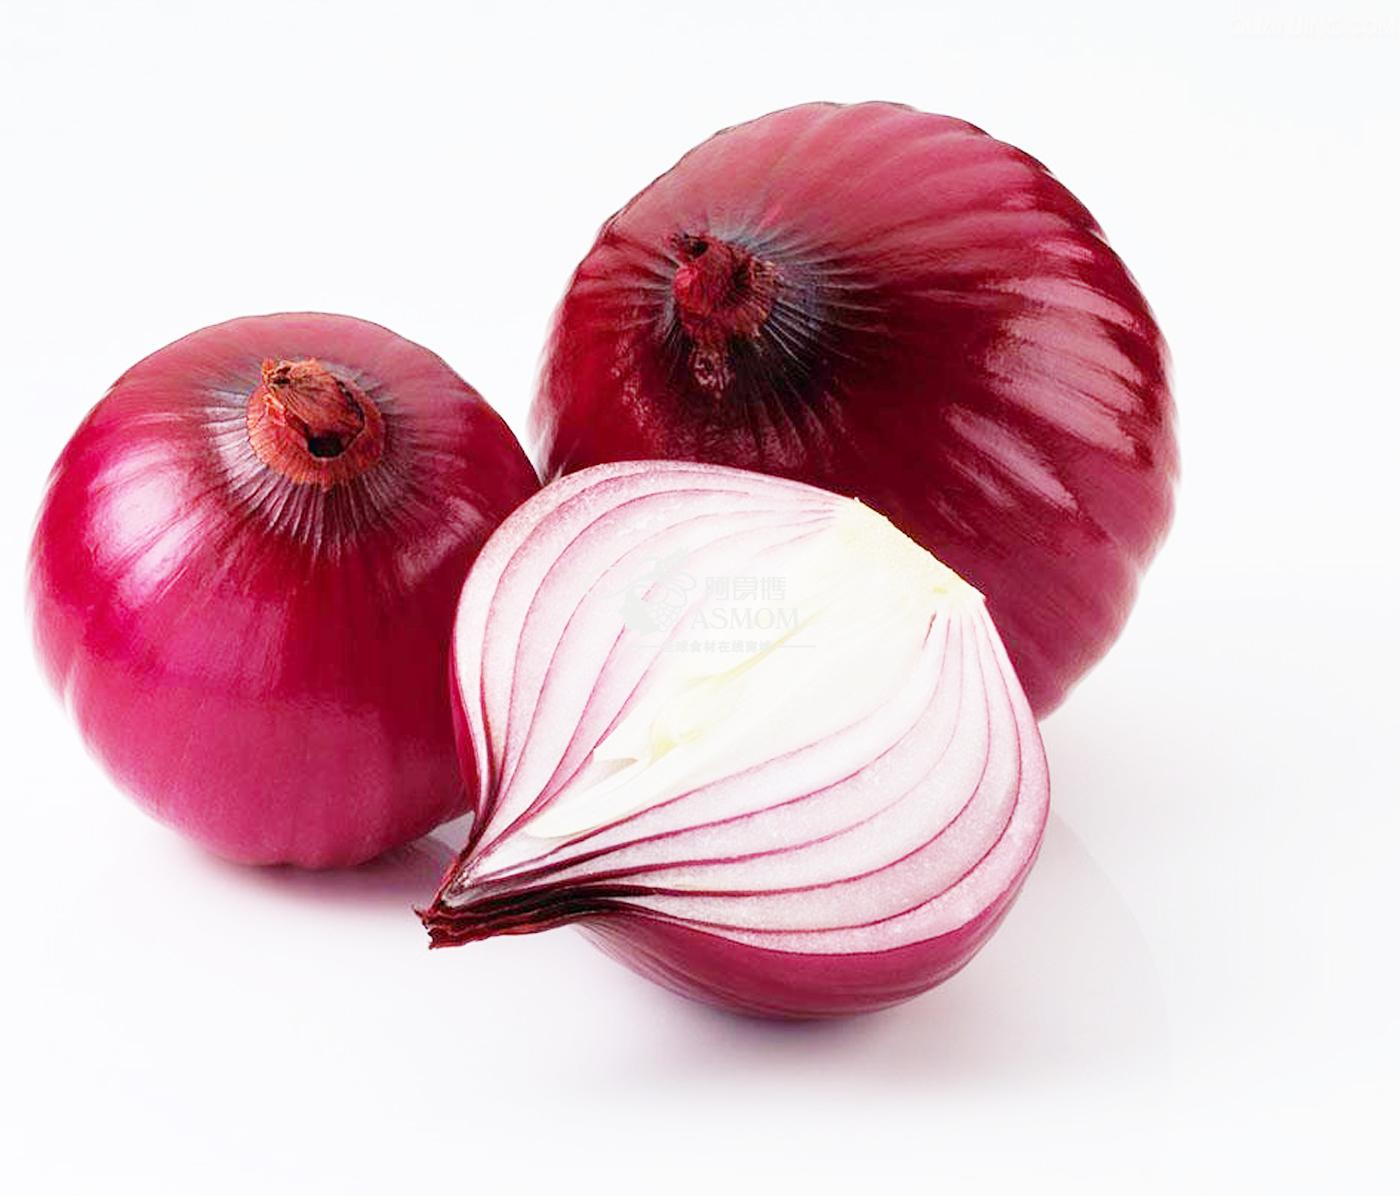 Common Onion Bulb 195.88 Kb